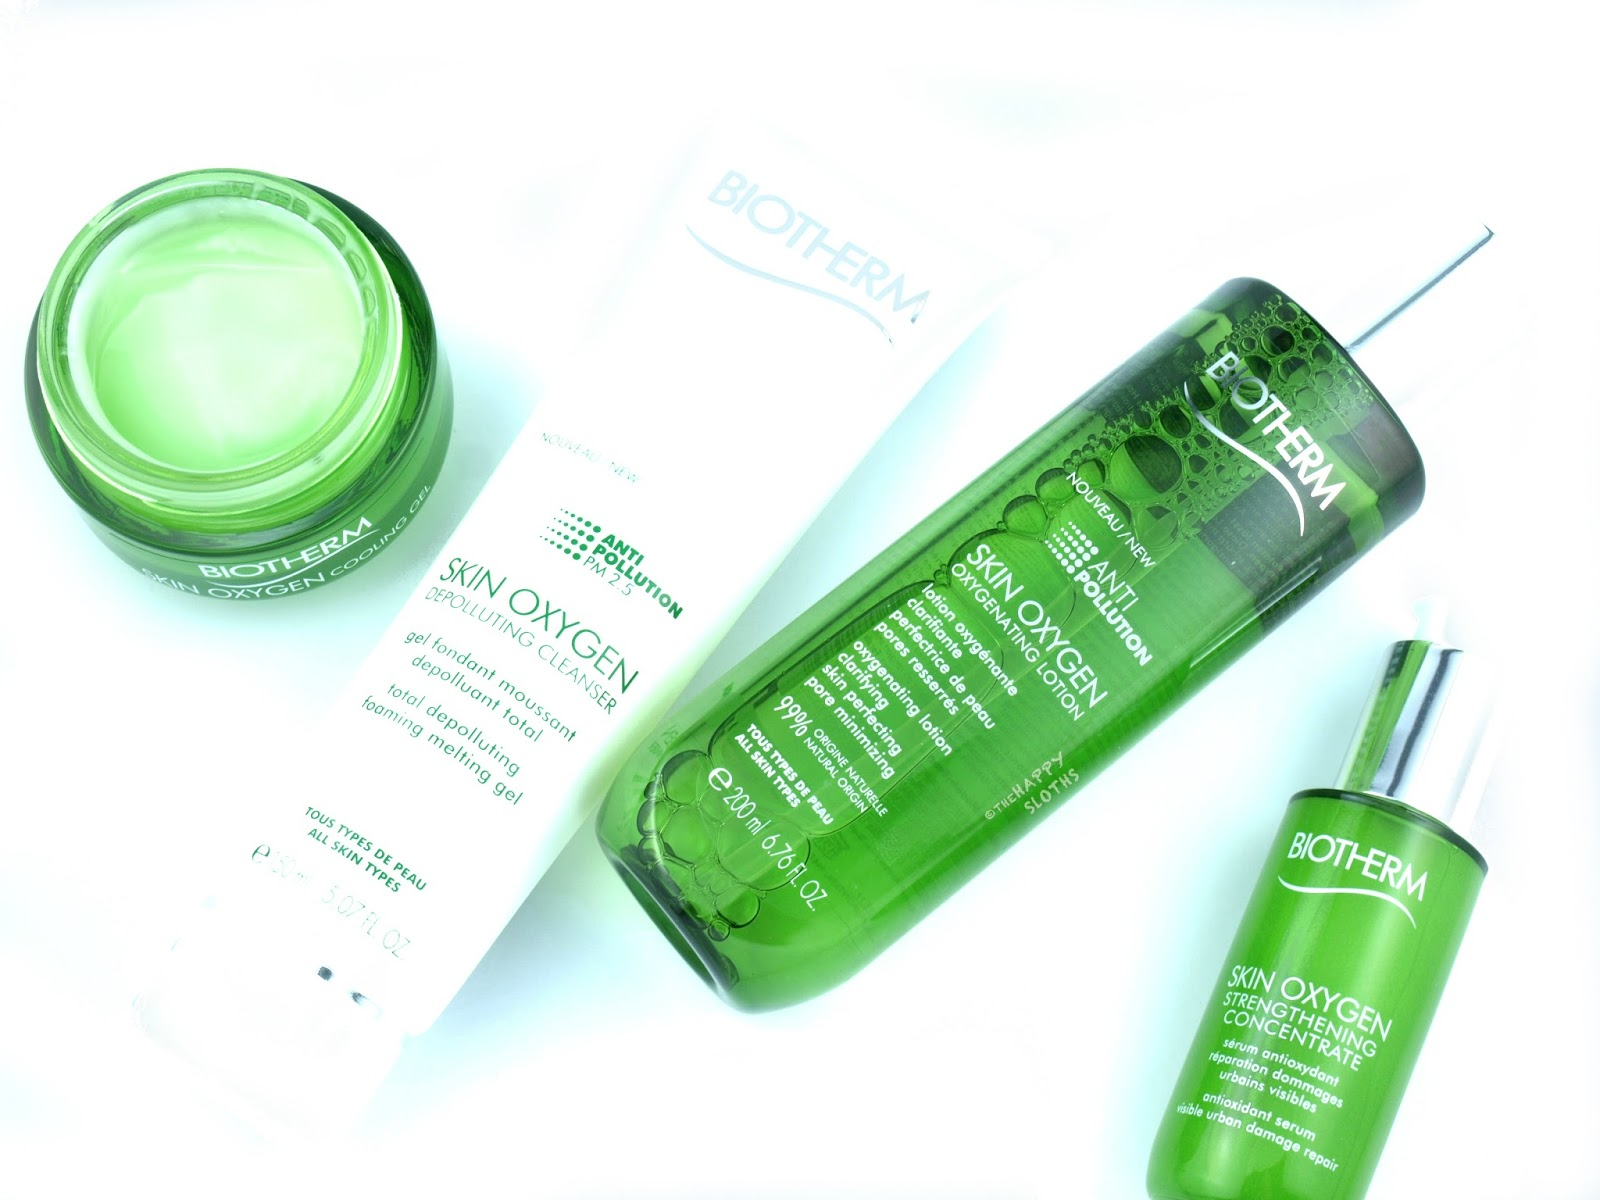 biotherm skin oxygen lotion review